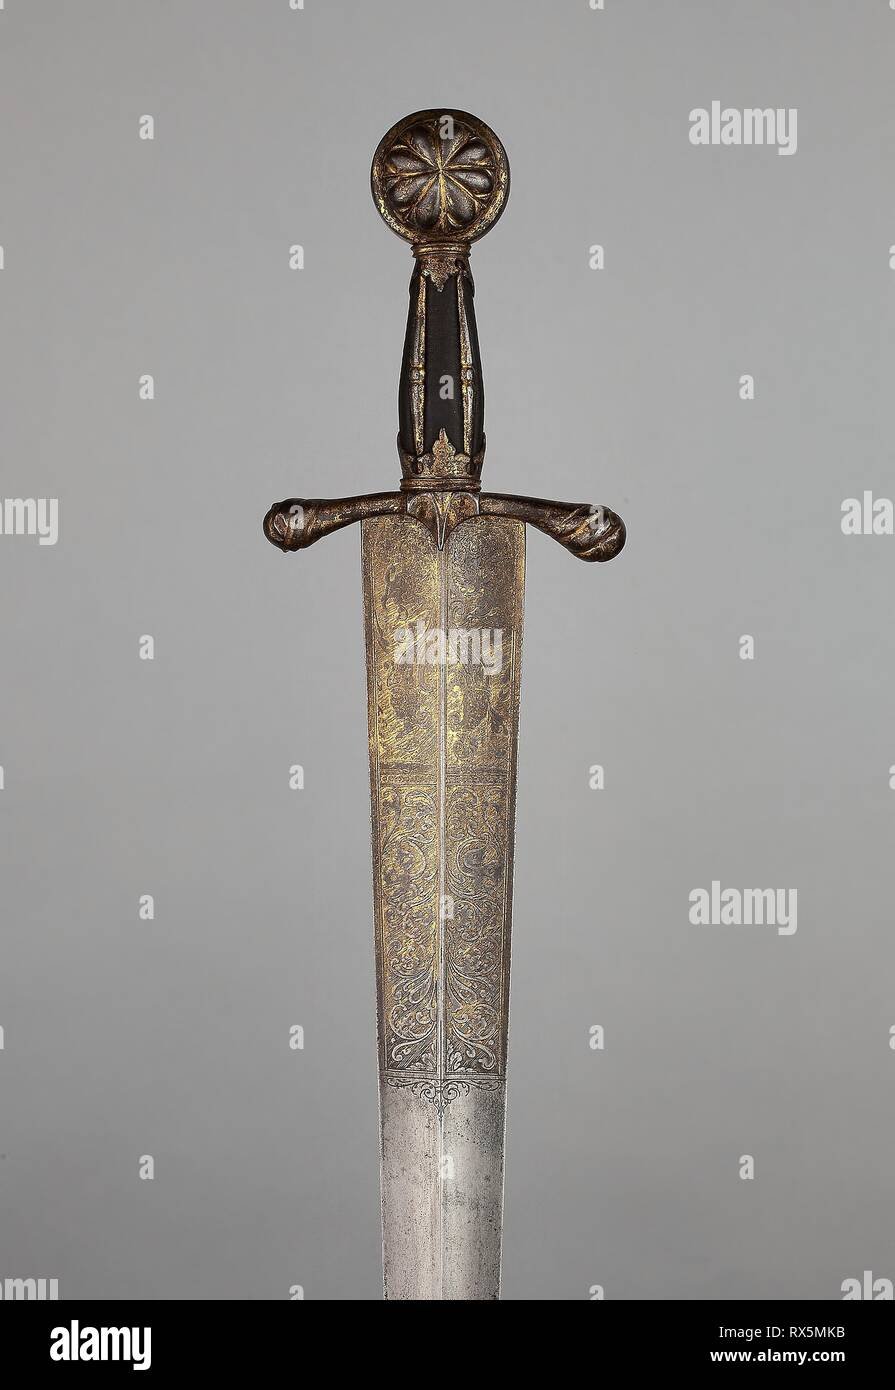 SWORDS, RAPIERS provenance: North Italy dating: late - Pinterest